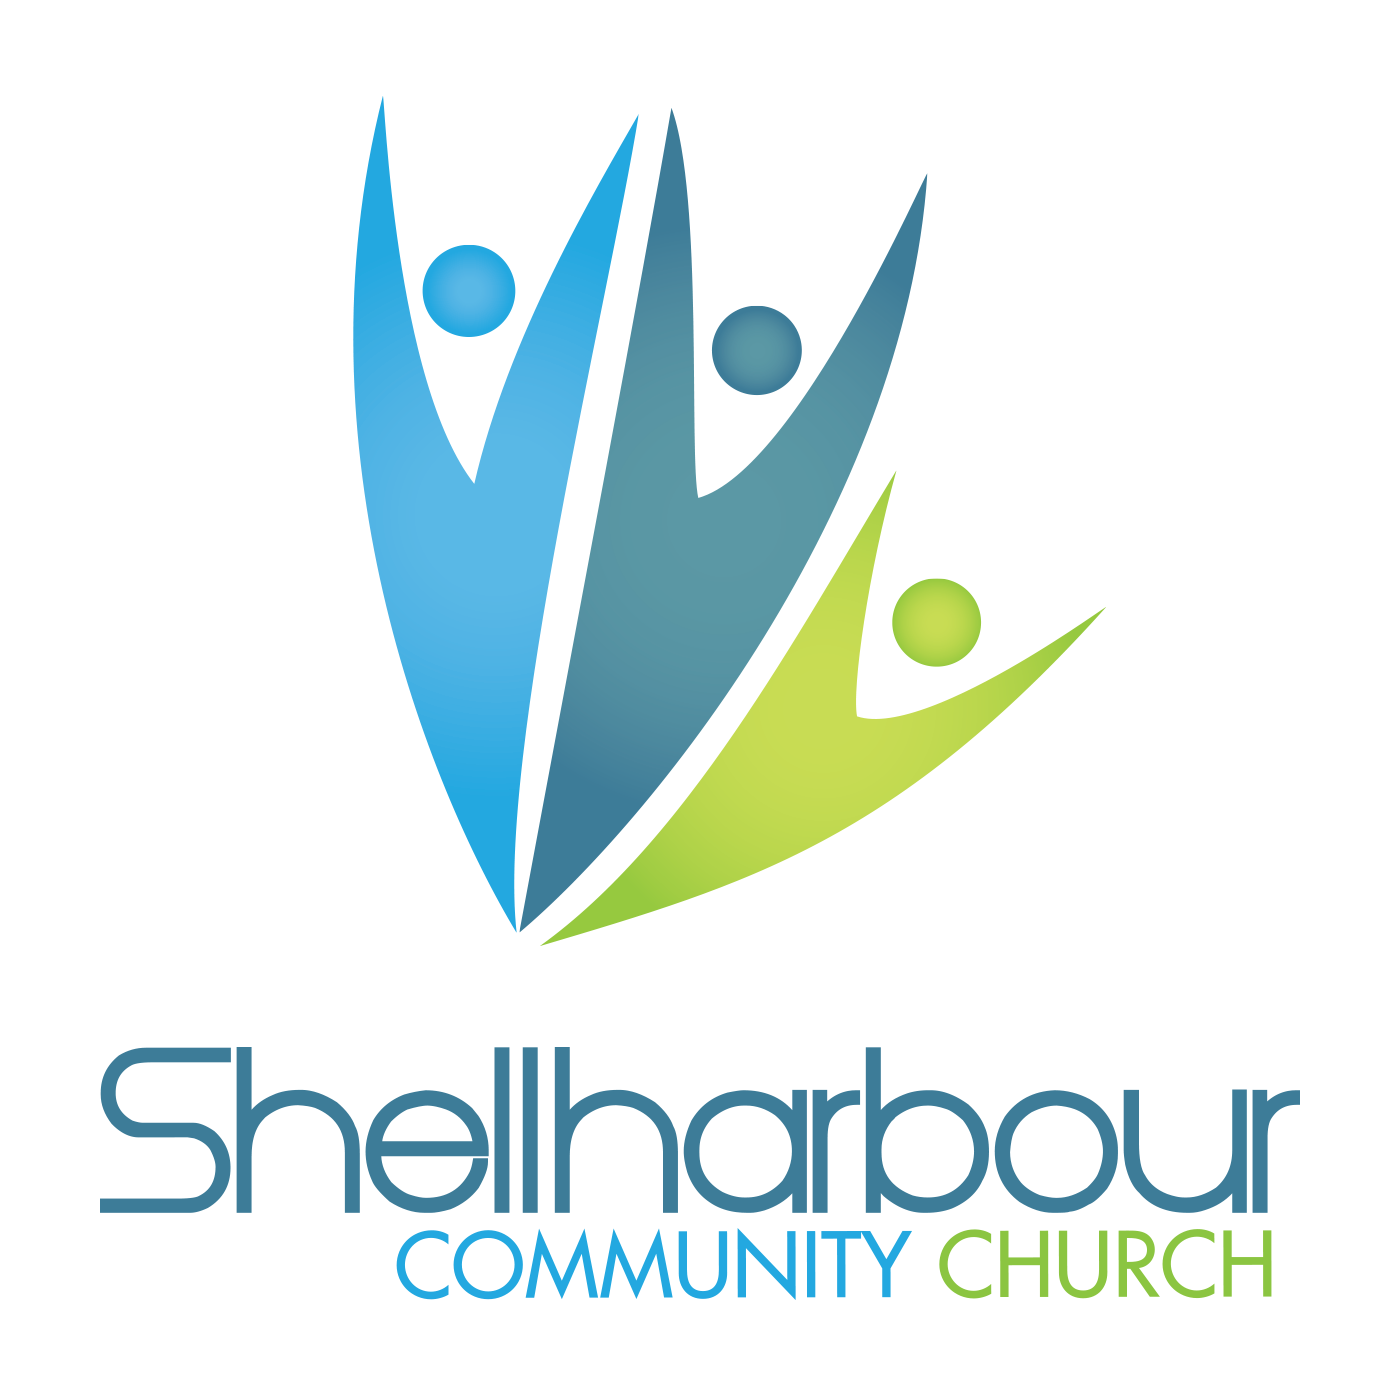 Shellharbour Community Church